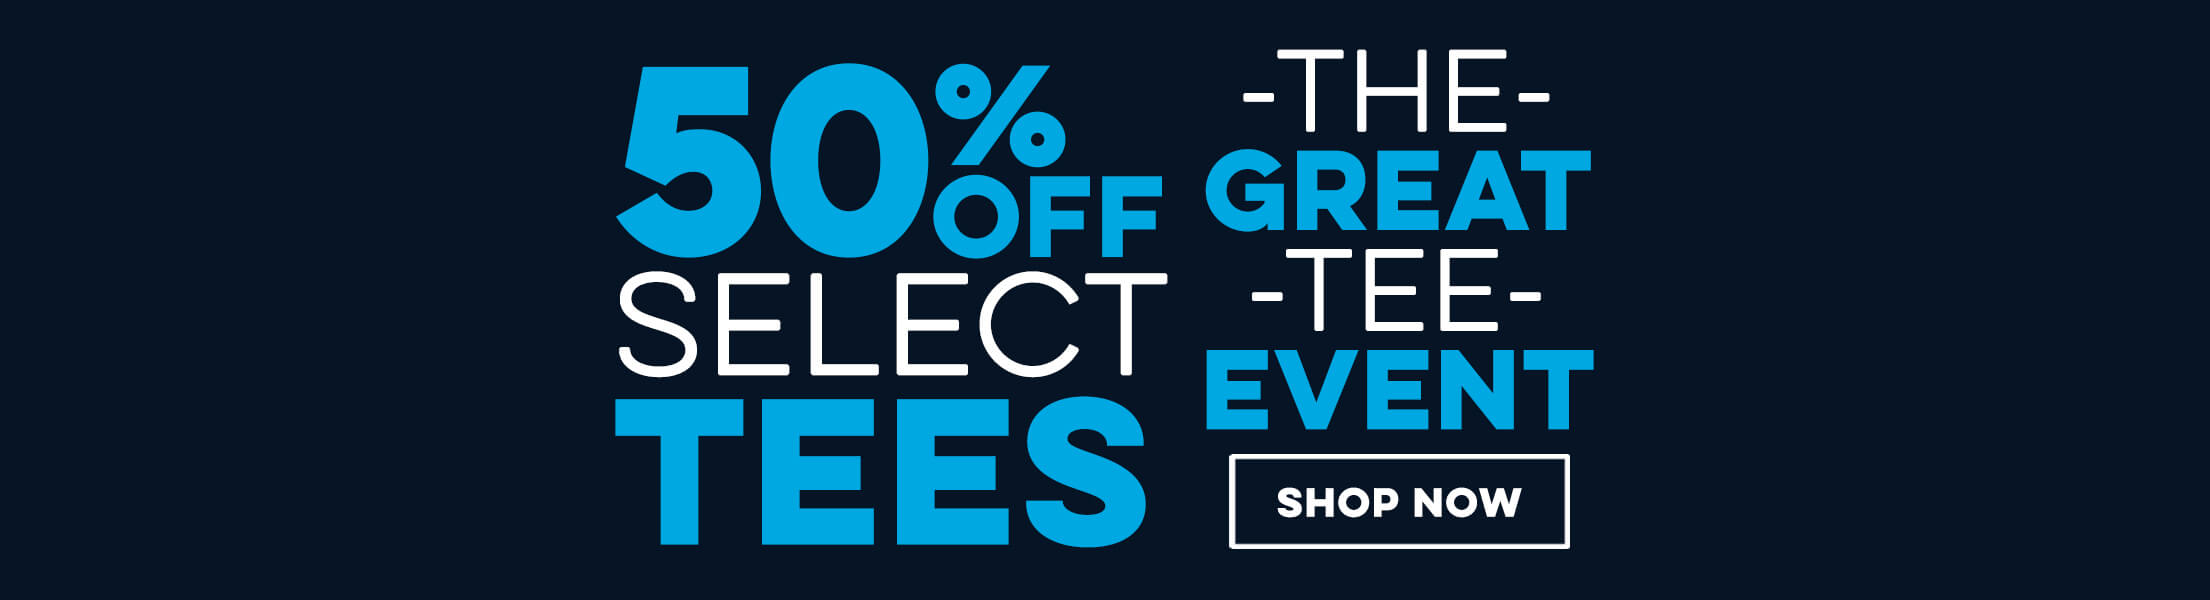 The Great Tee Sale - 50% Off Select Tees